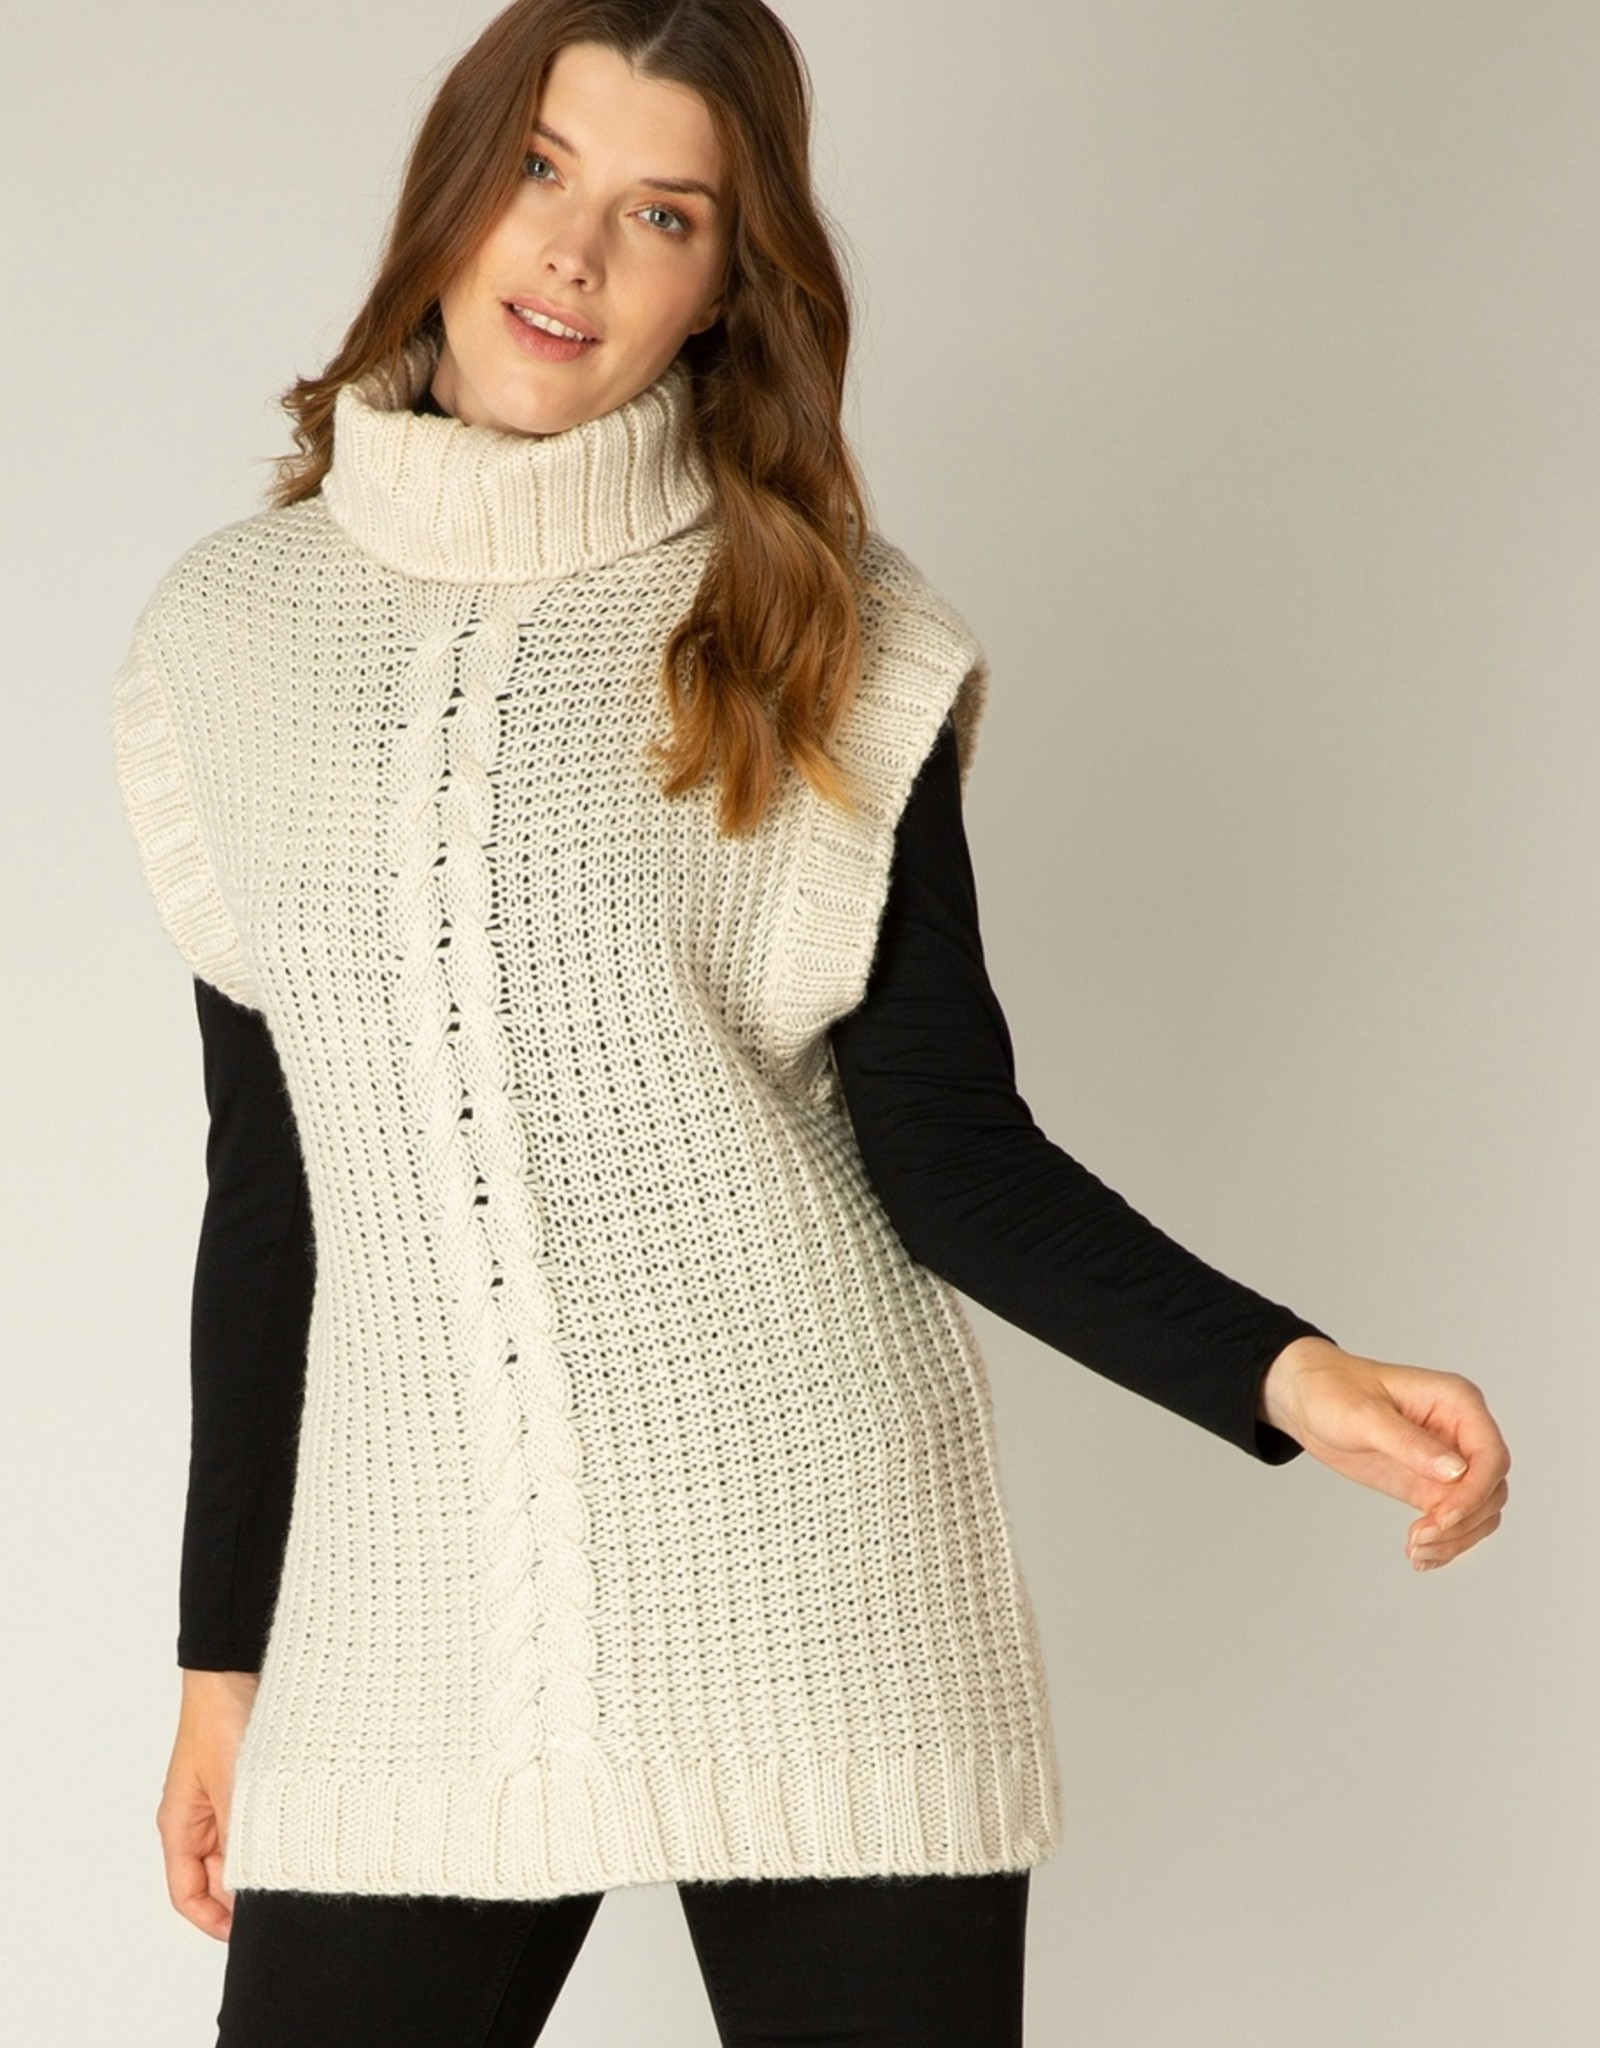 Yest Yest Adoree 2200 Short Sleeve Knit Sweater with A Cowl Neck